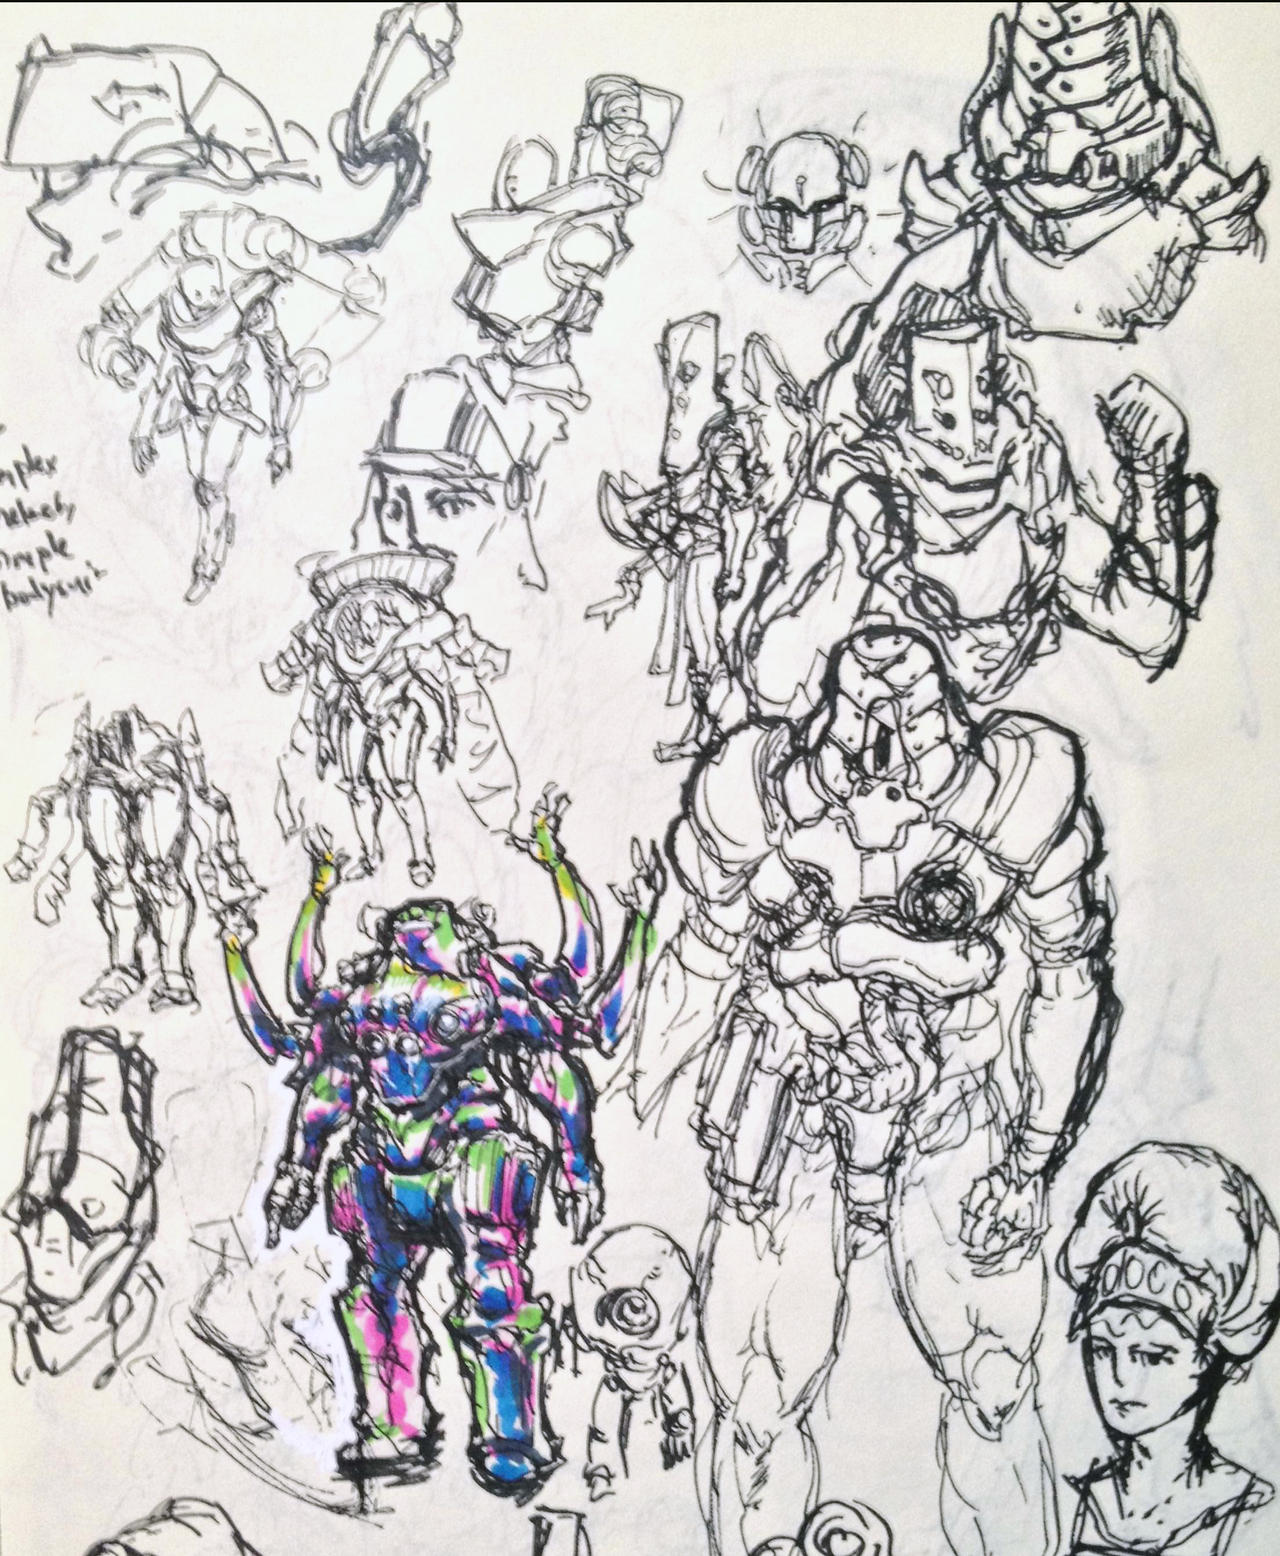 Spacesuit sketches 4 by KidneyShake